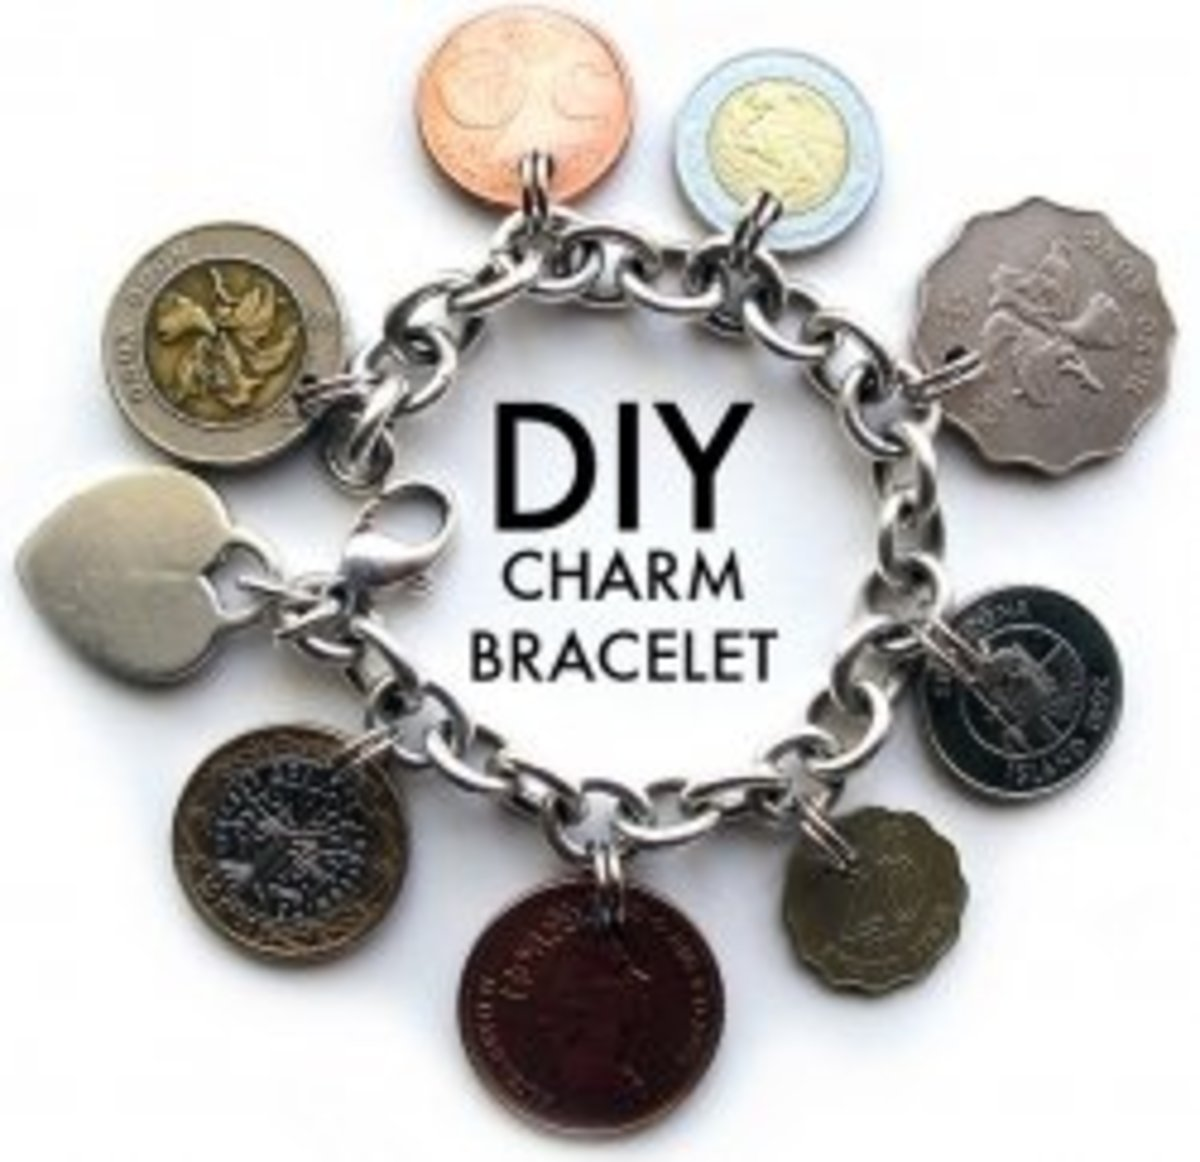 How to Make Your Own Jewelry | Tutorials, Tips & Ideas